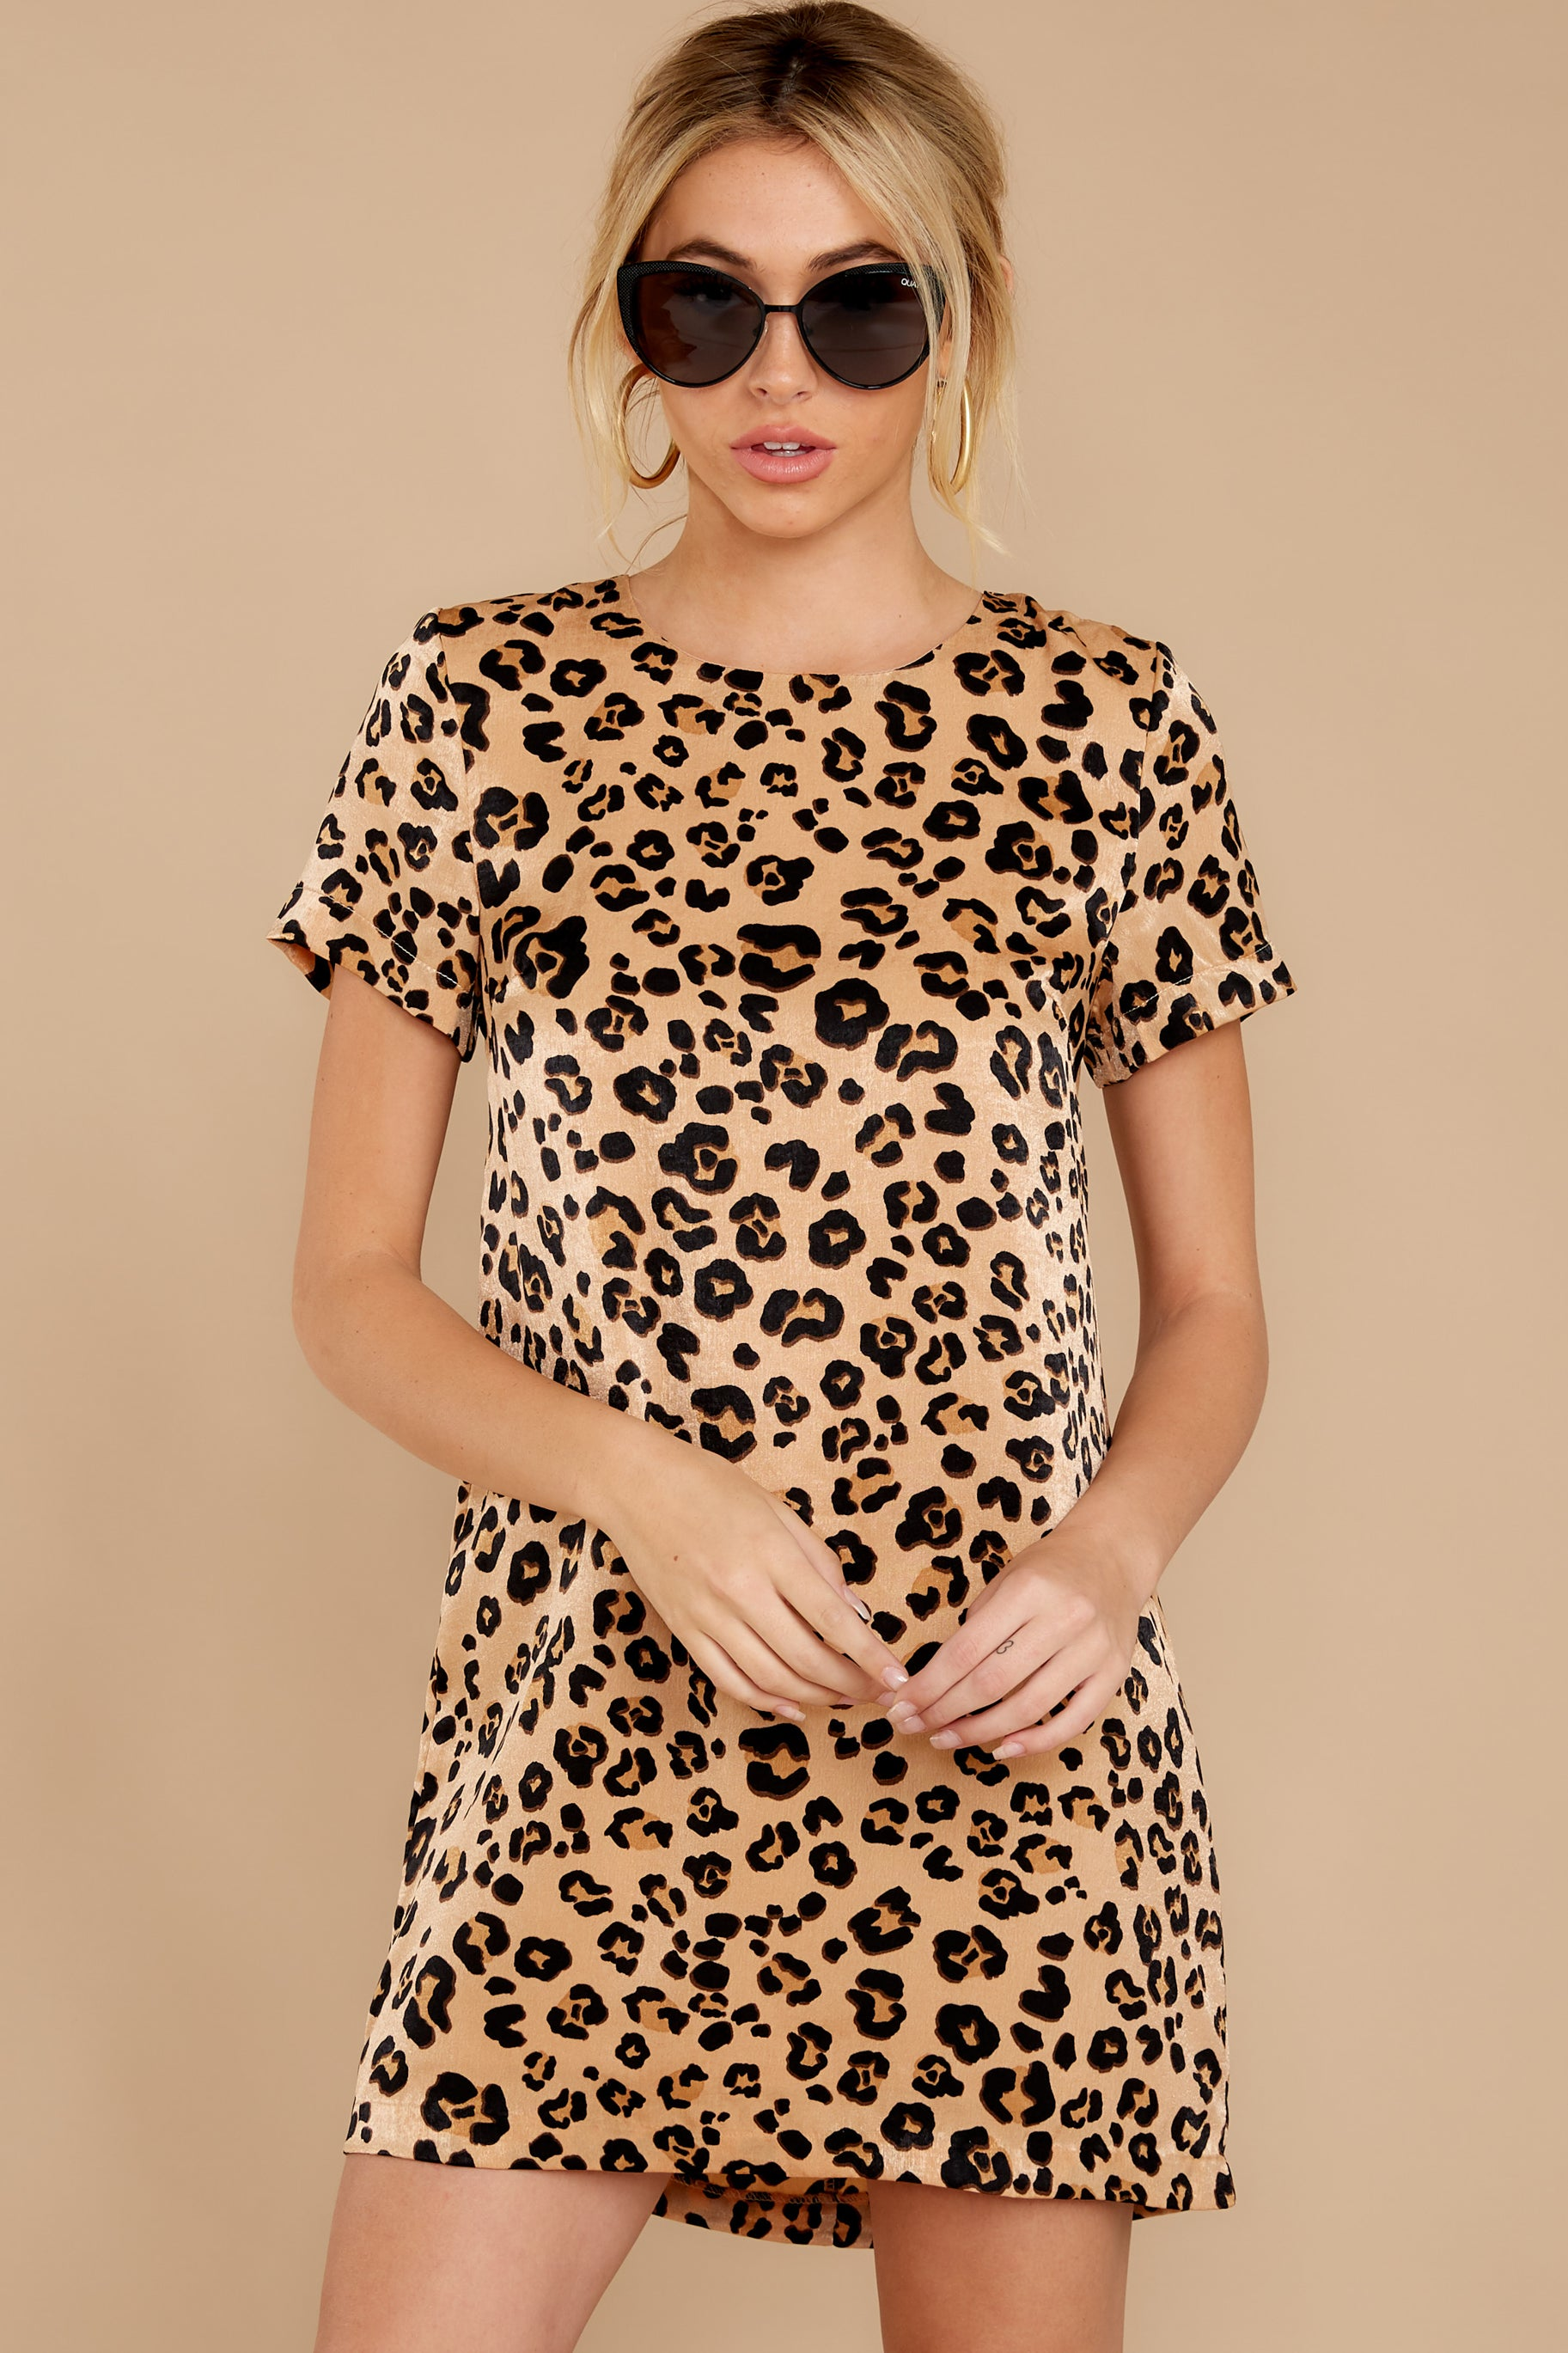 7 Party For Two Leopard Print Dress at reddressboutique.com